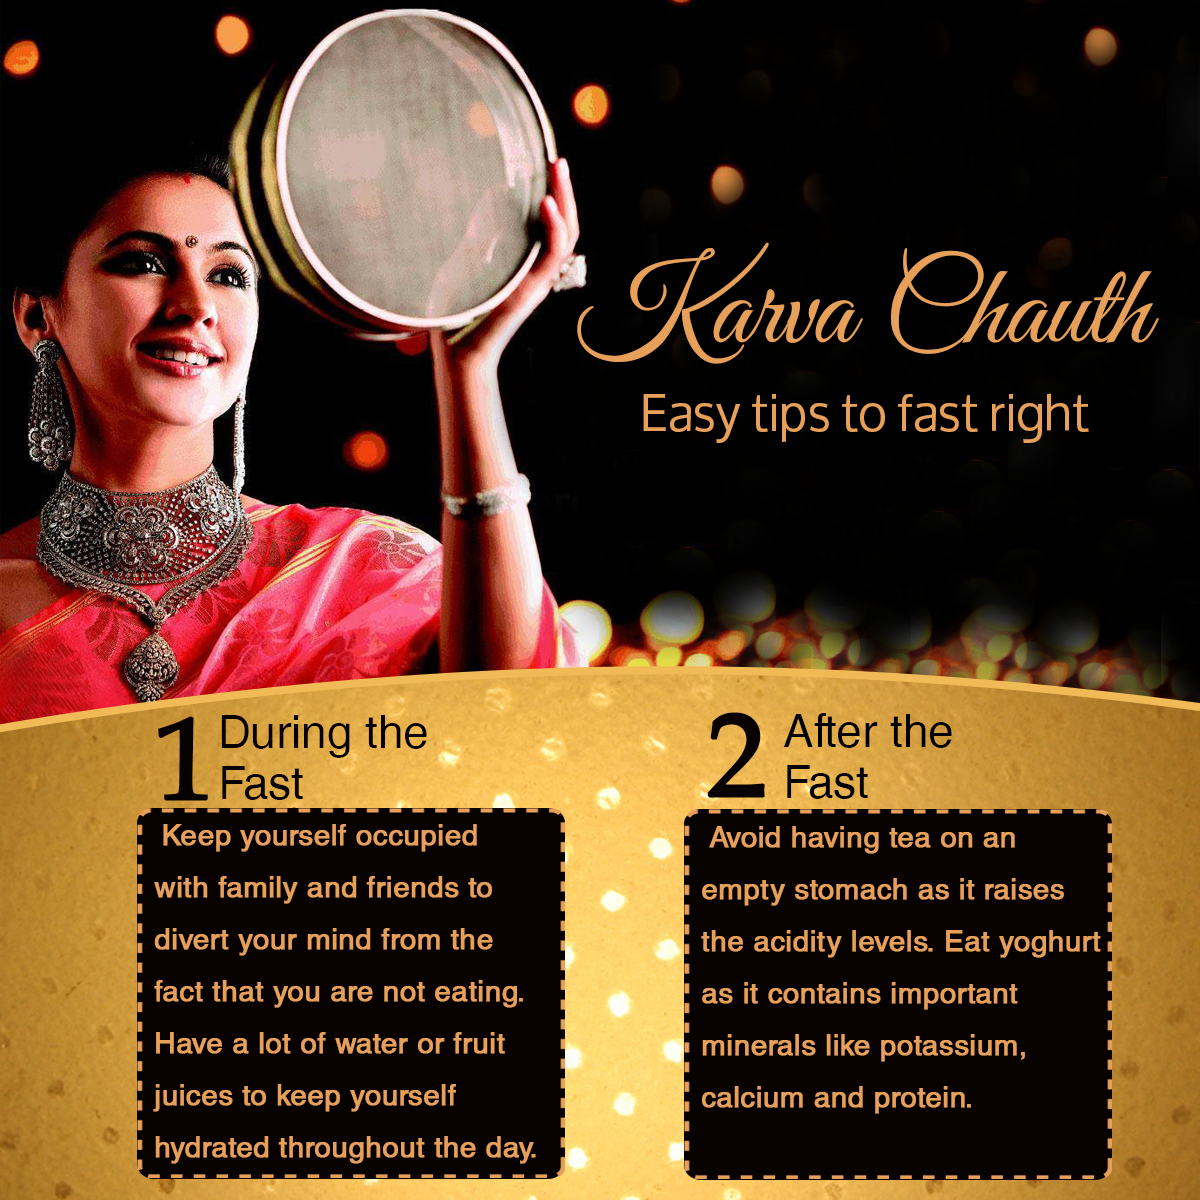 Karva Chauth: Easy tips to fast right